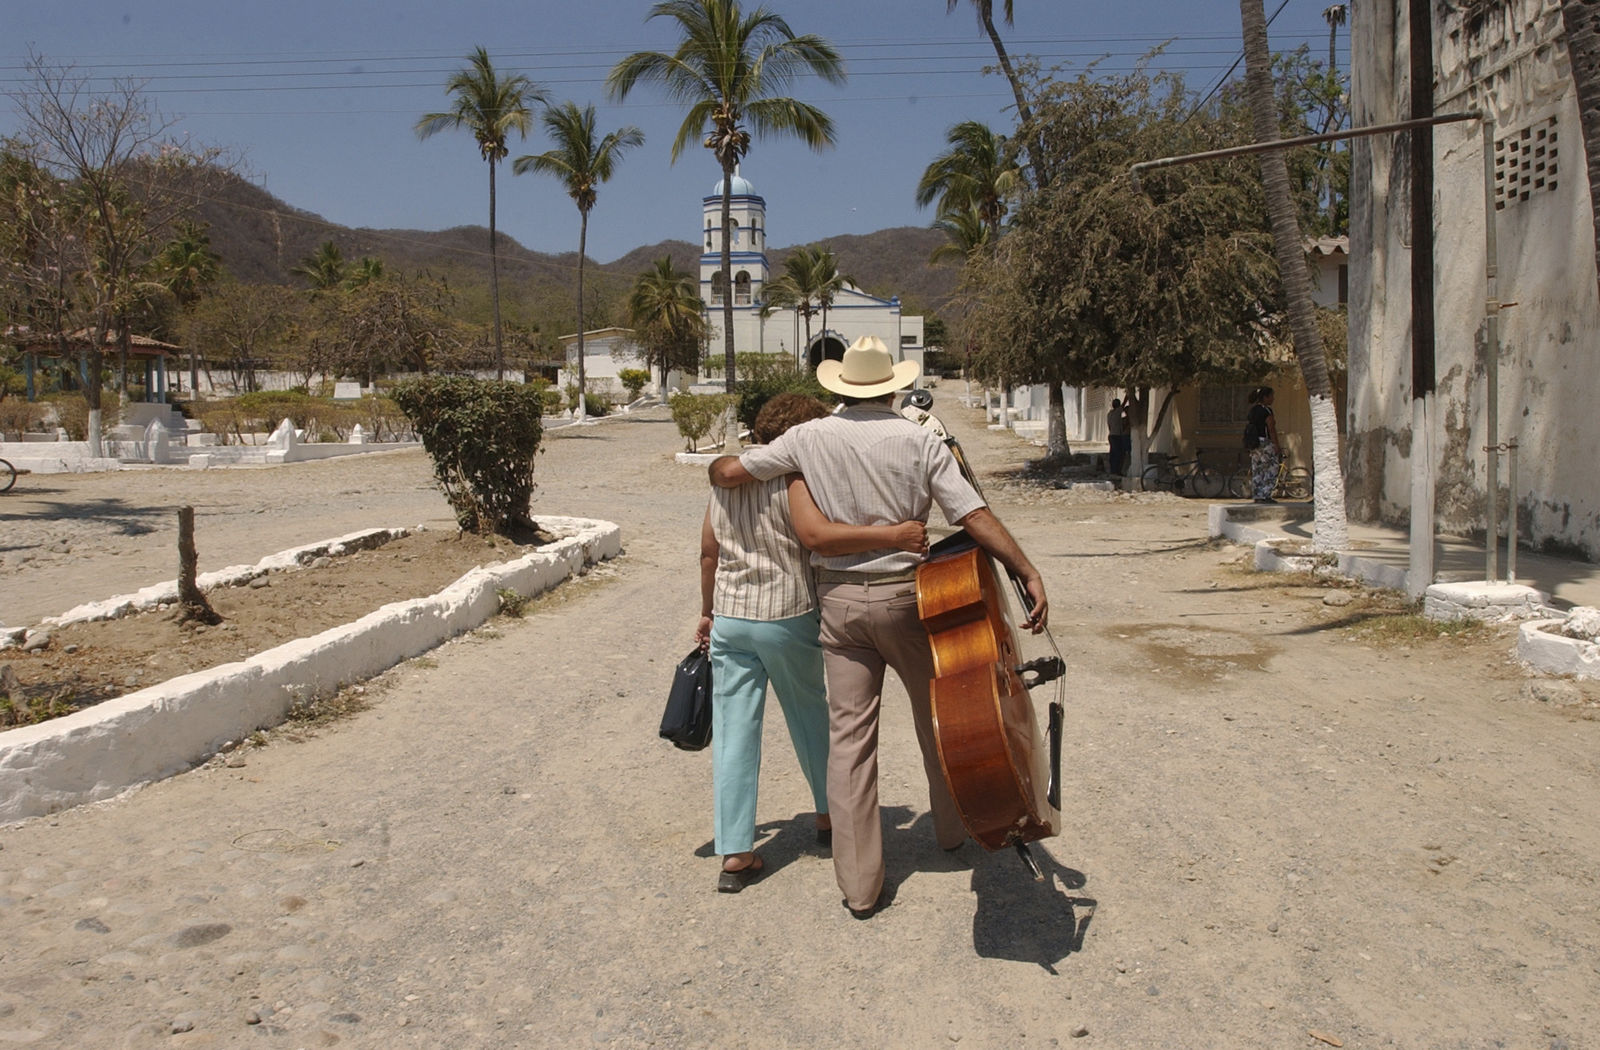 FILE - In this May 12, 2005 file photo, inmate Francisco Loera, who is serving a 10 year sentence, walks with his bass while embracing his partner Alicia Anchondo who arrived to visit him at the Islas Marias federal prison island, located 90 miles south of Mazatlan, Mexico. (AP Photo/Eduardo Verdugo, File)